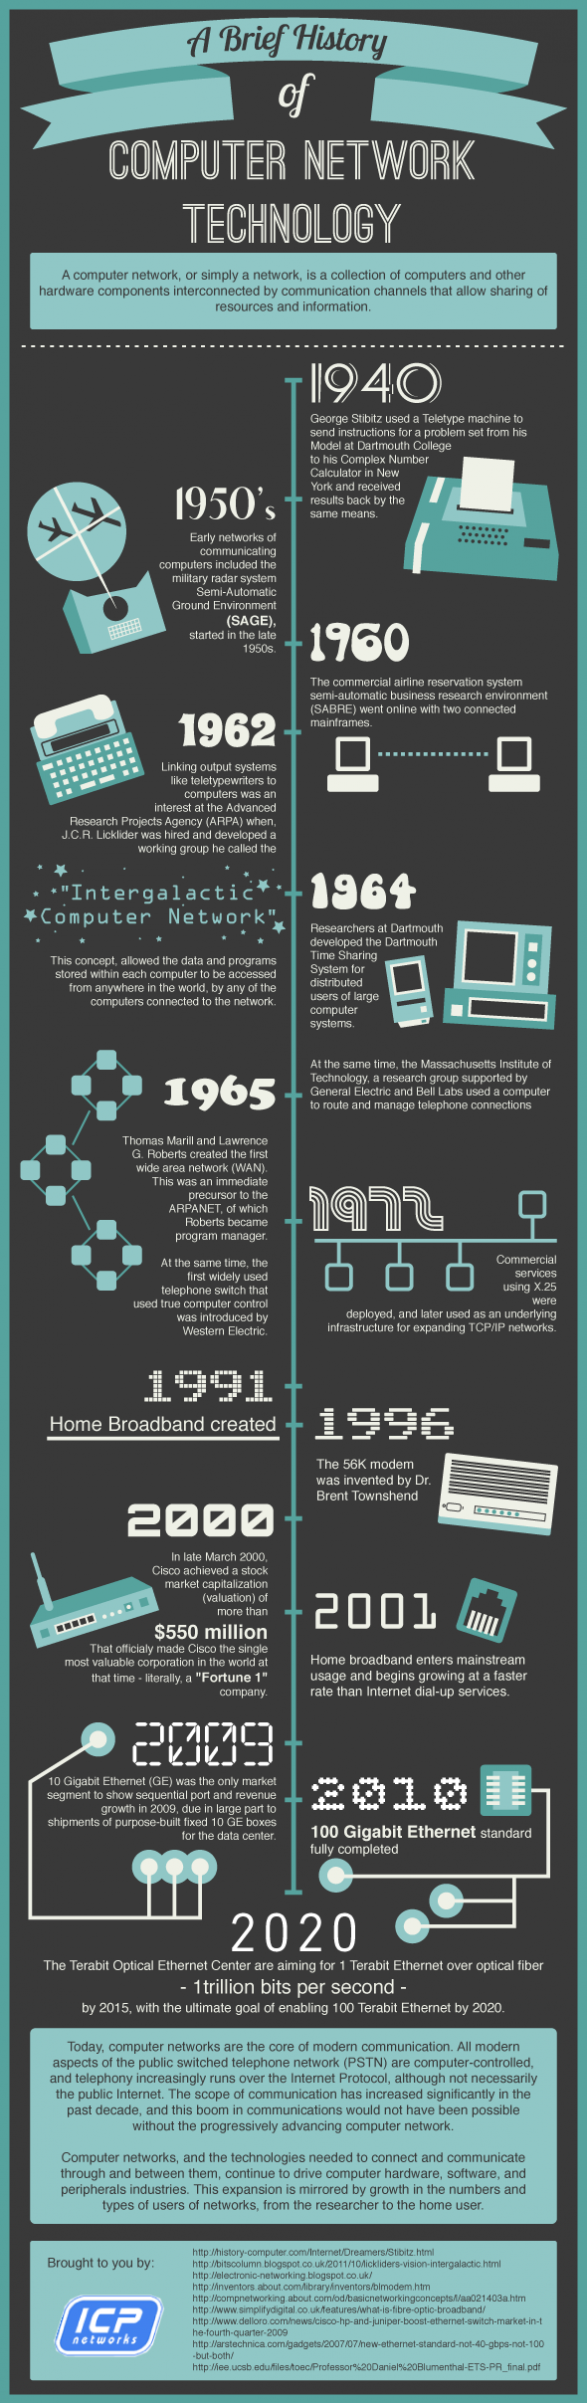 A Brief History Of Computer Network Technology